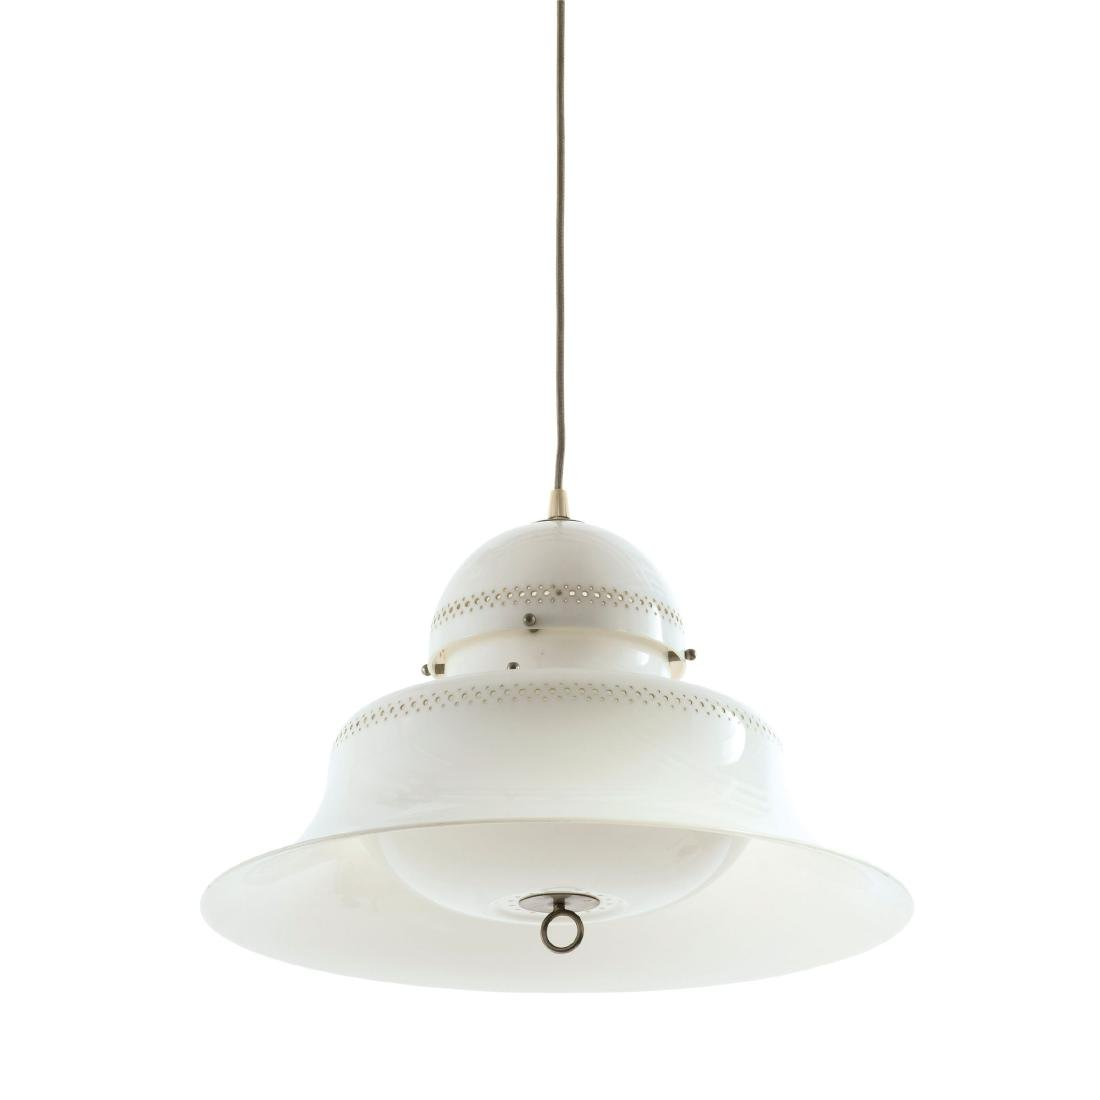 'KD 14' ceiling light, 1963